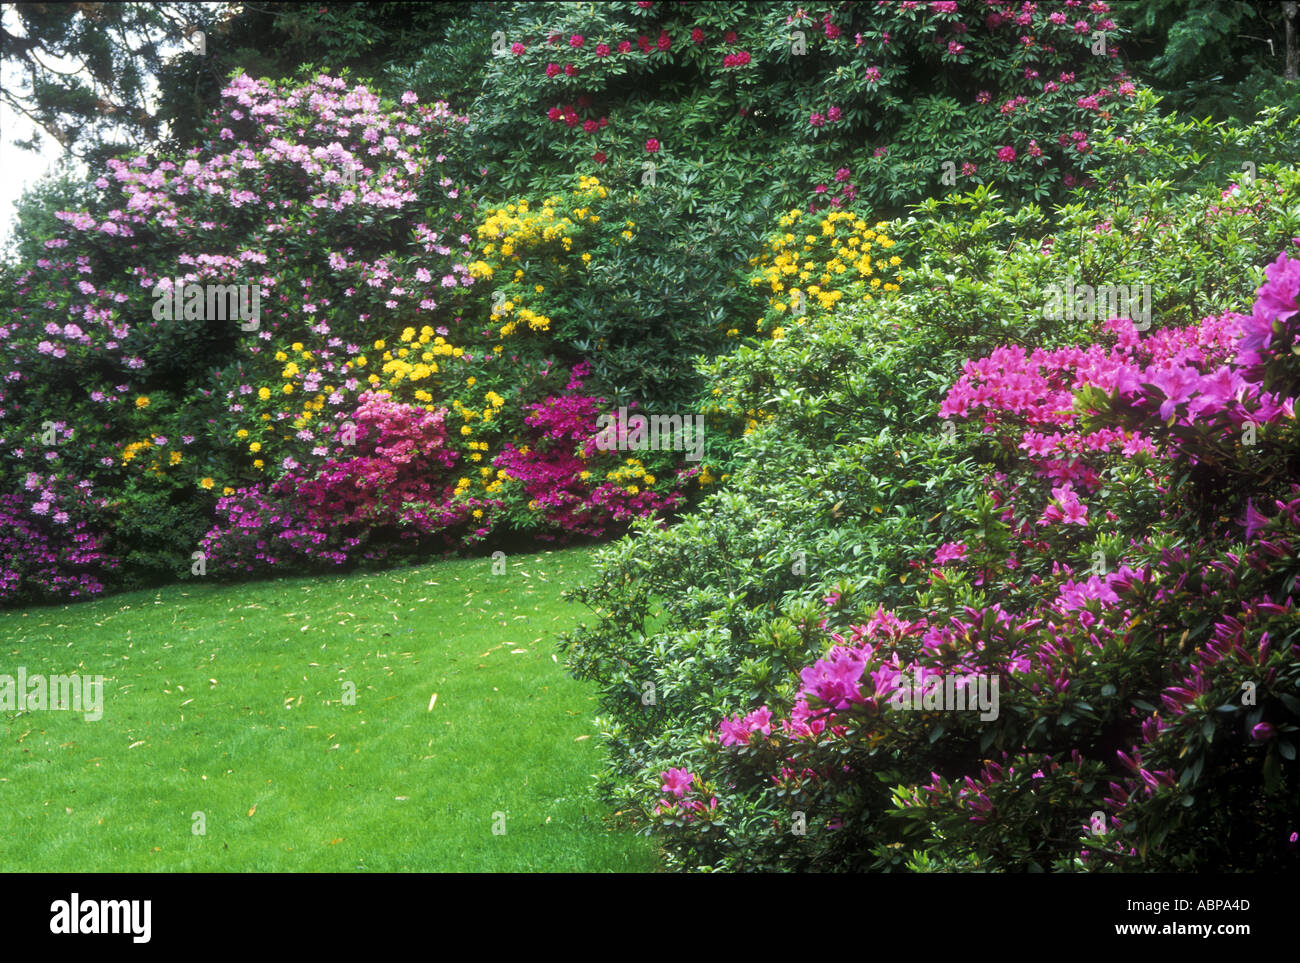 Spring Flowering Bushes Of Rhododendrons At The Parrots Square Isola